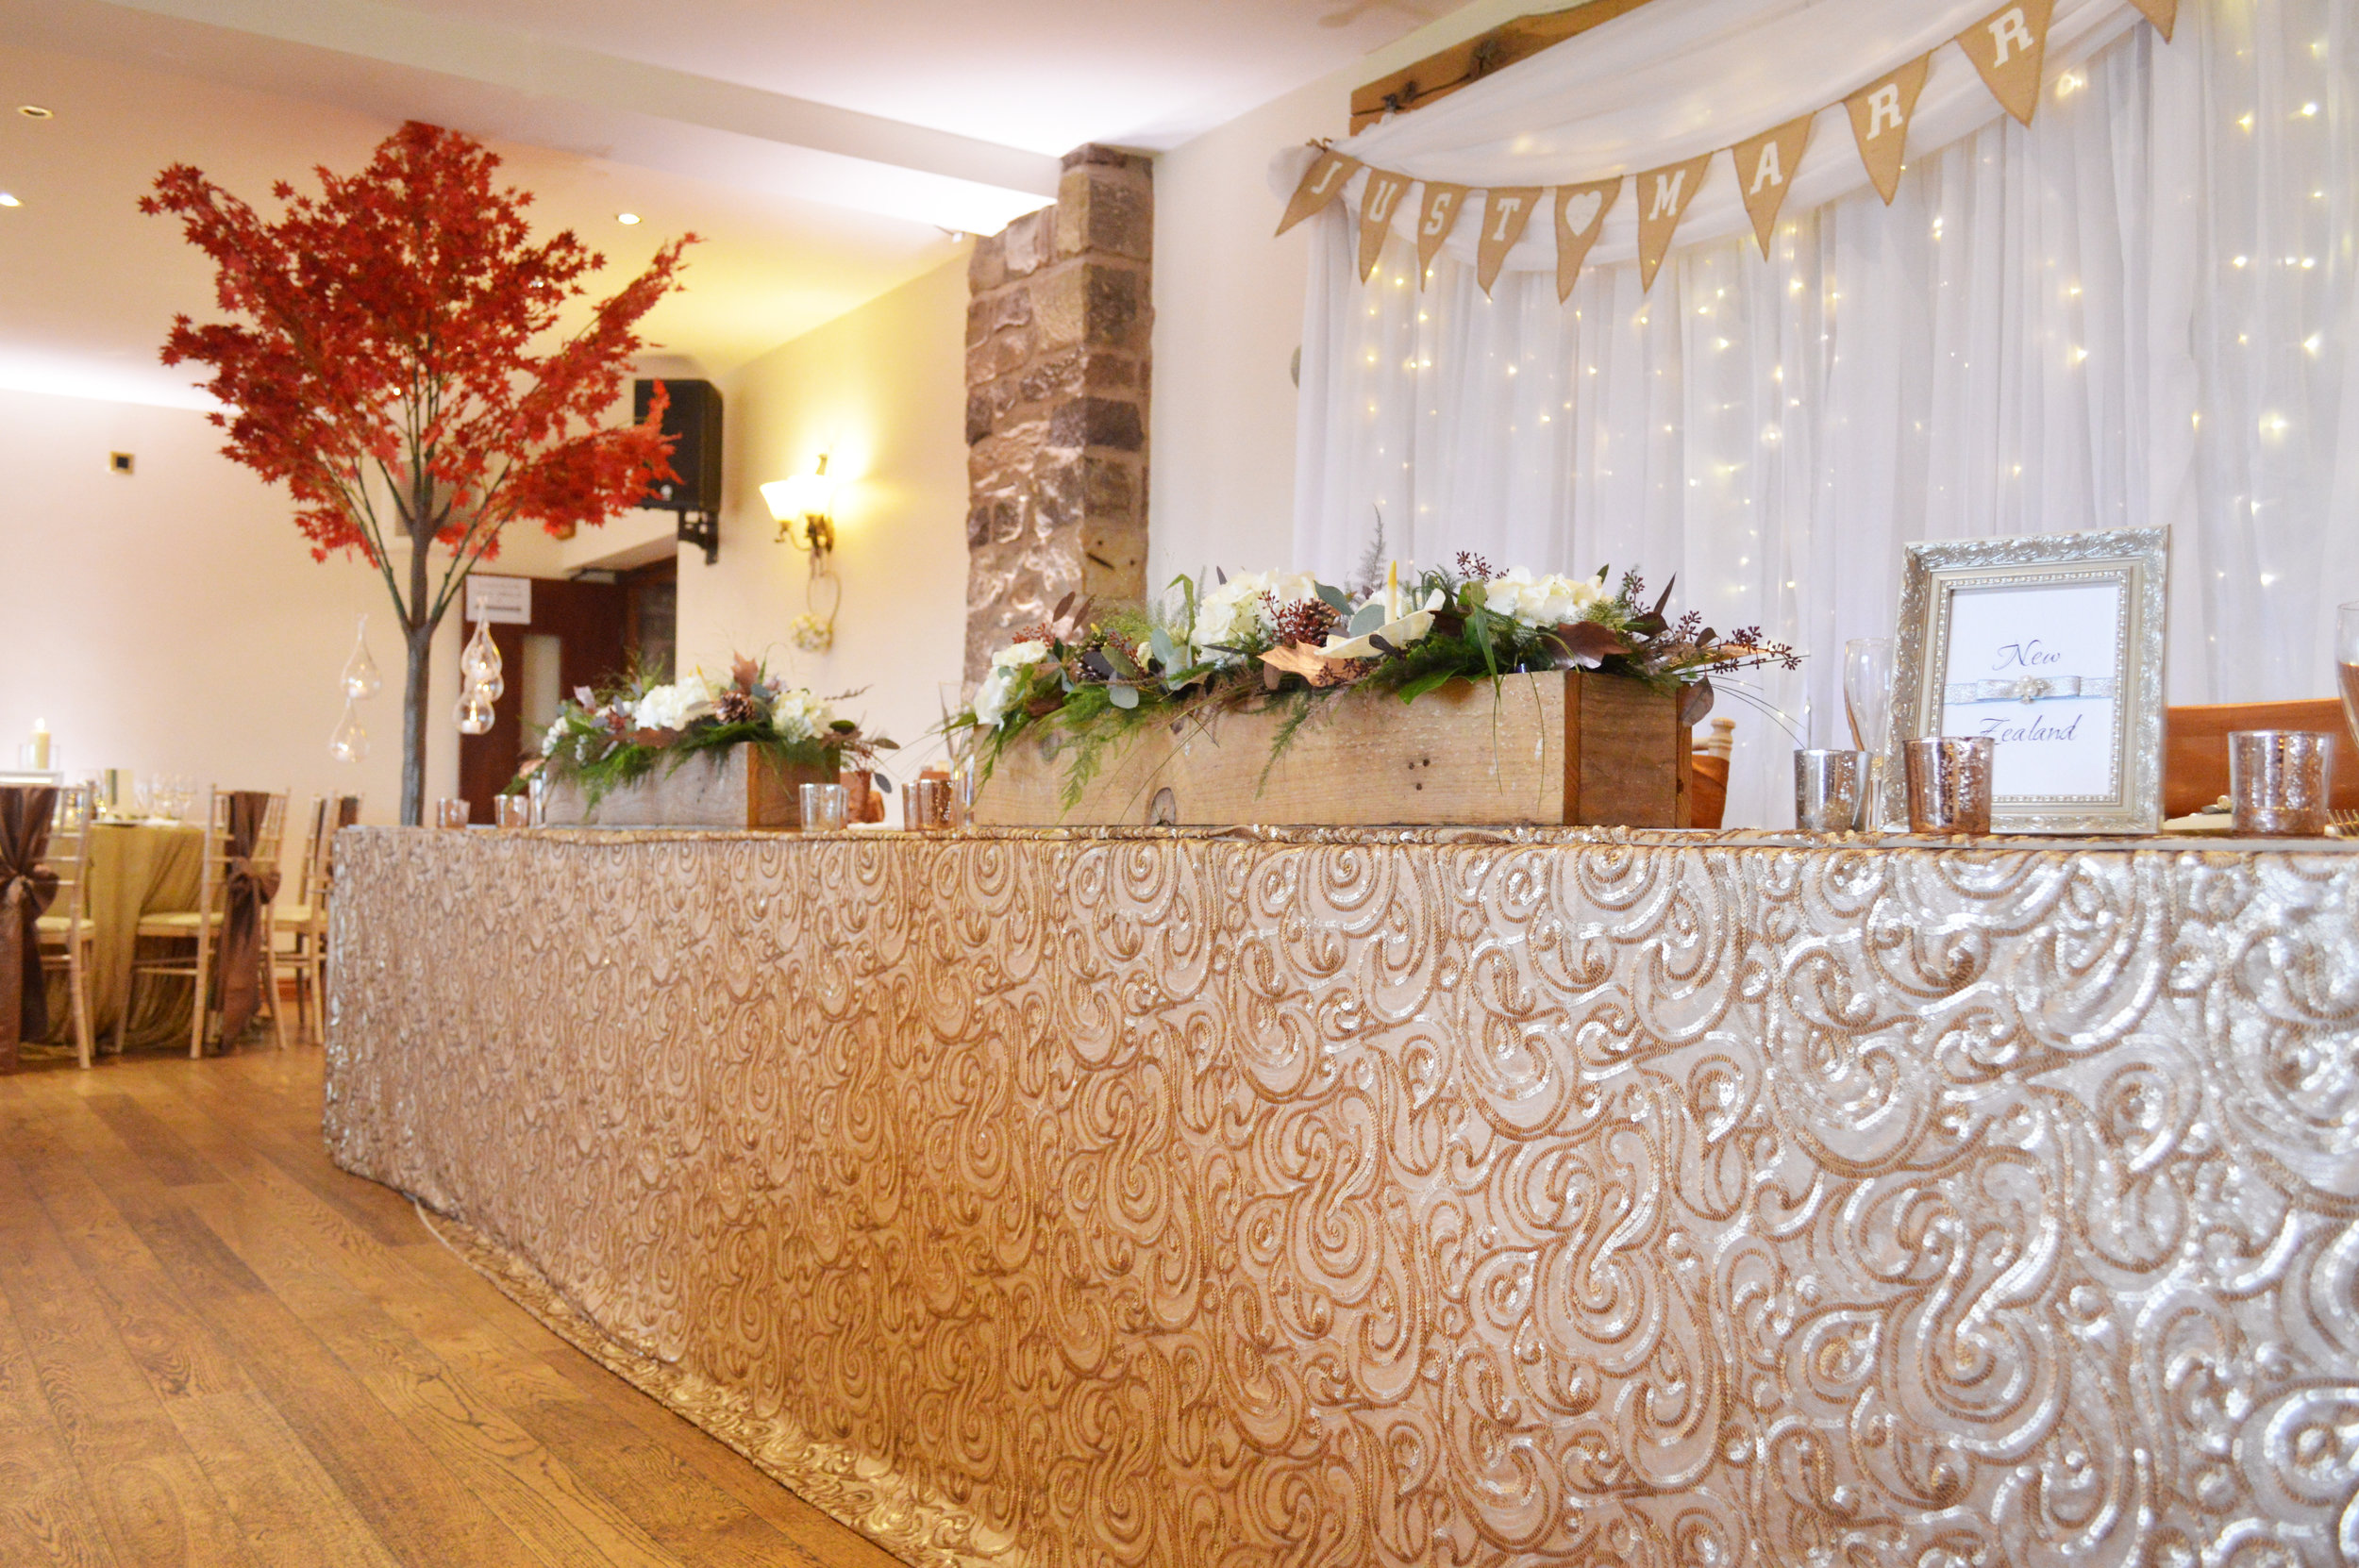 Top table cloth